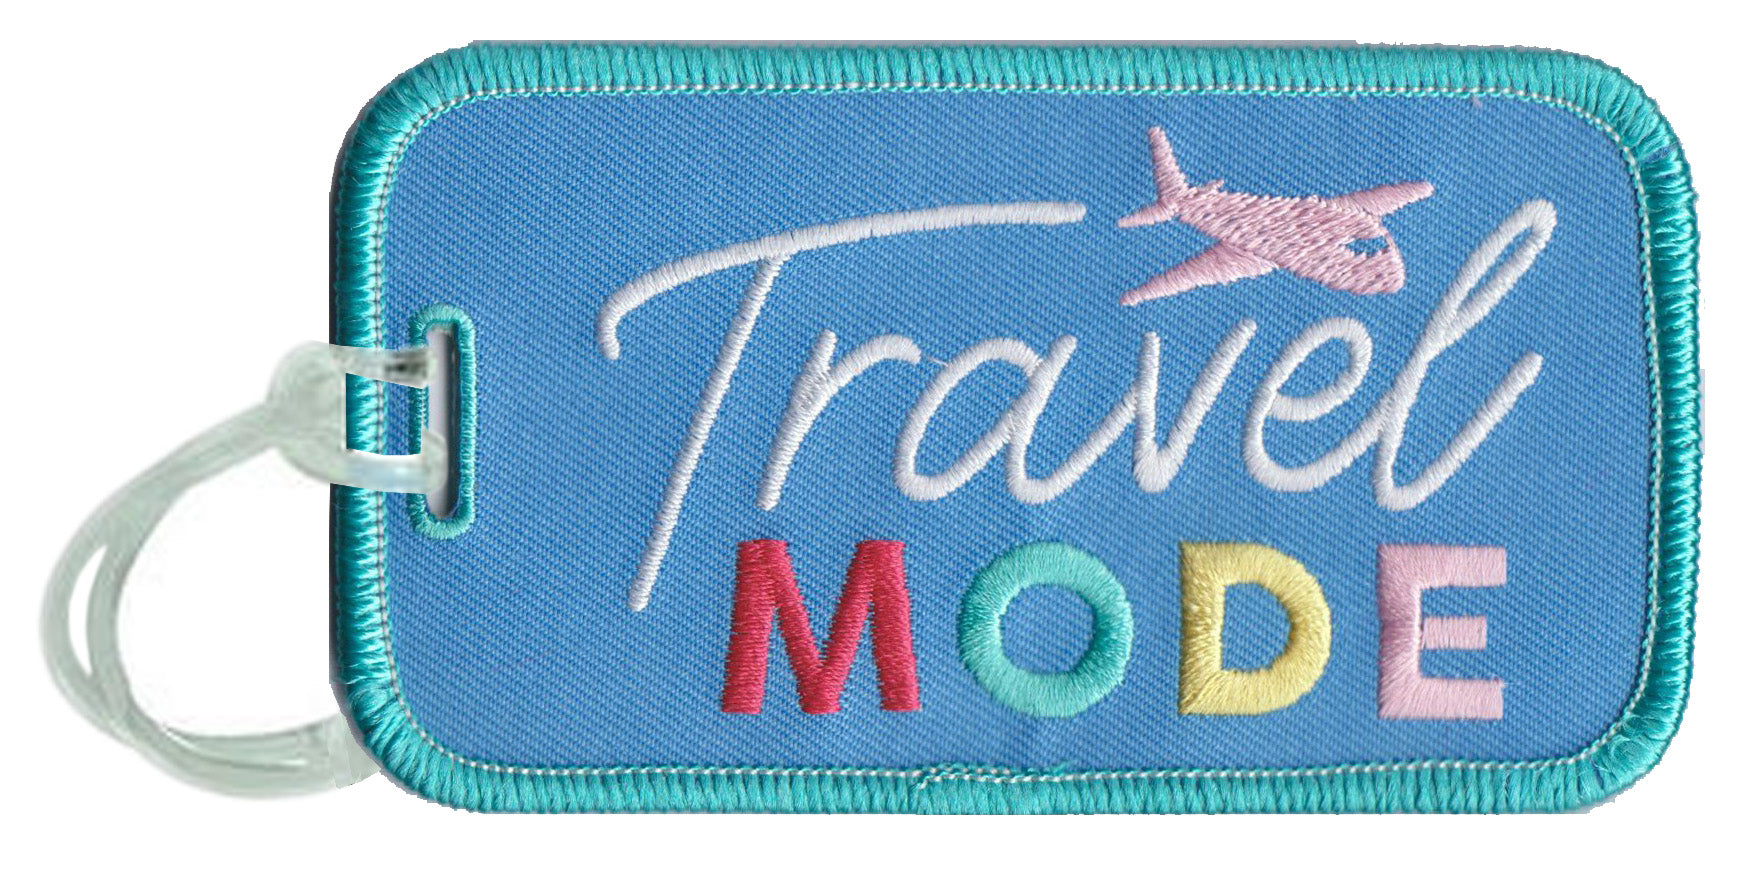 Travel Mode Wholesale Luggage Tags